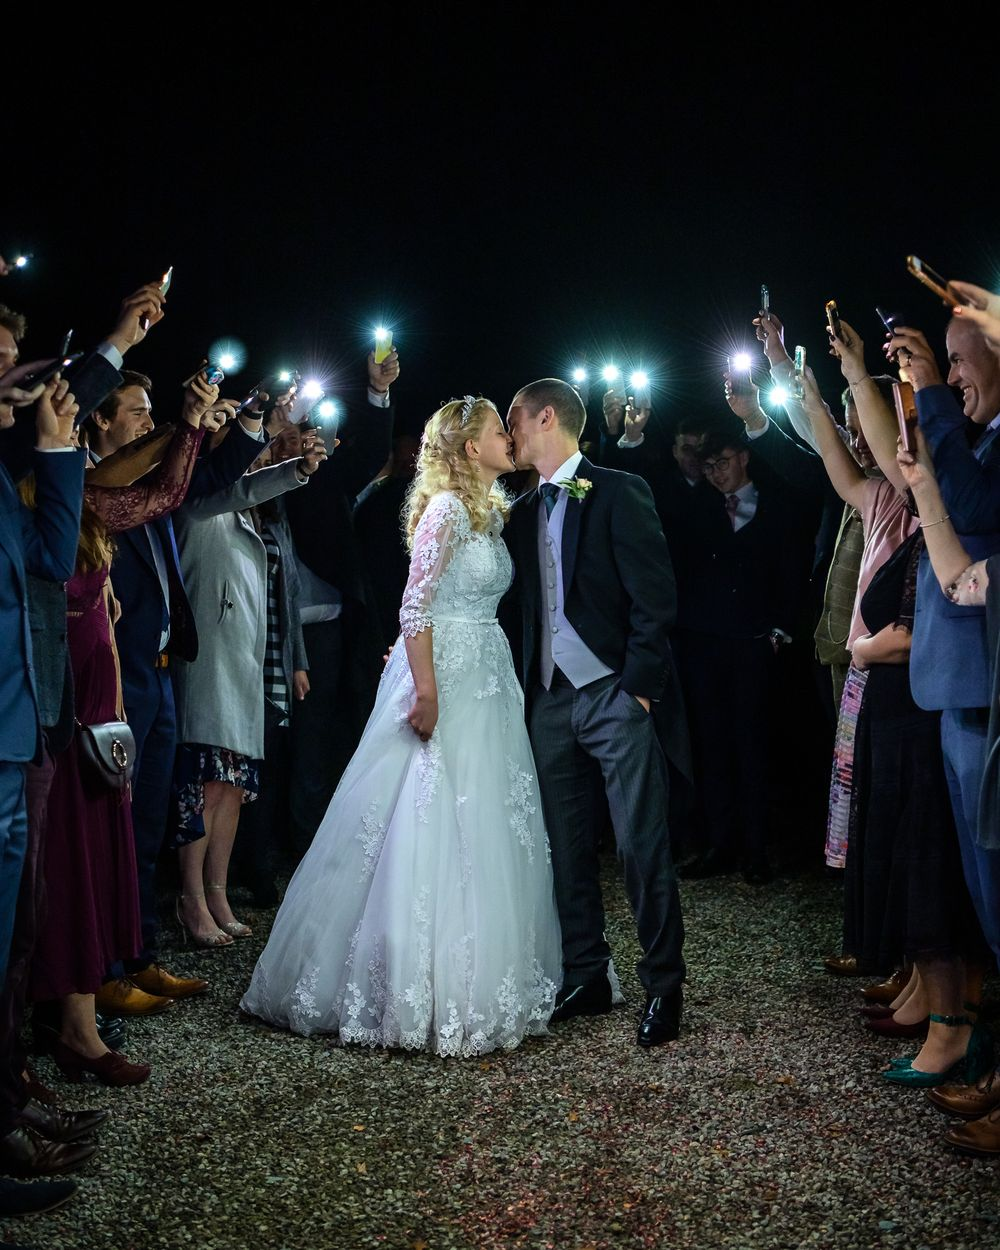 Bride and groom surrounded by quests with mobile phome torches